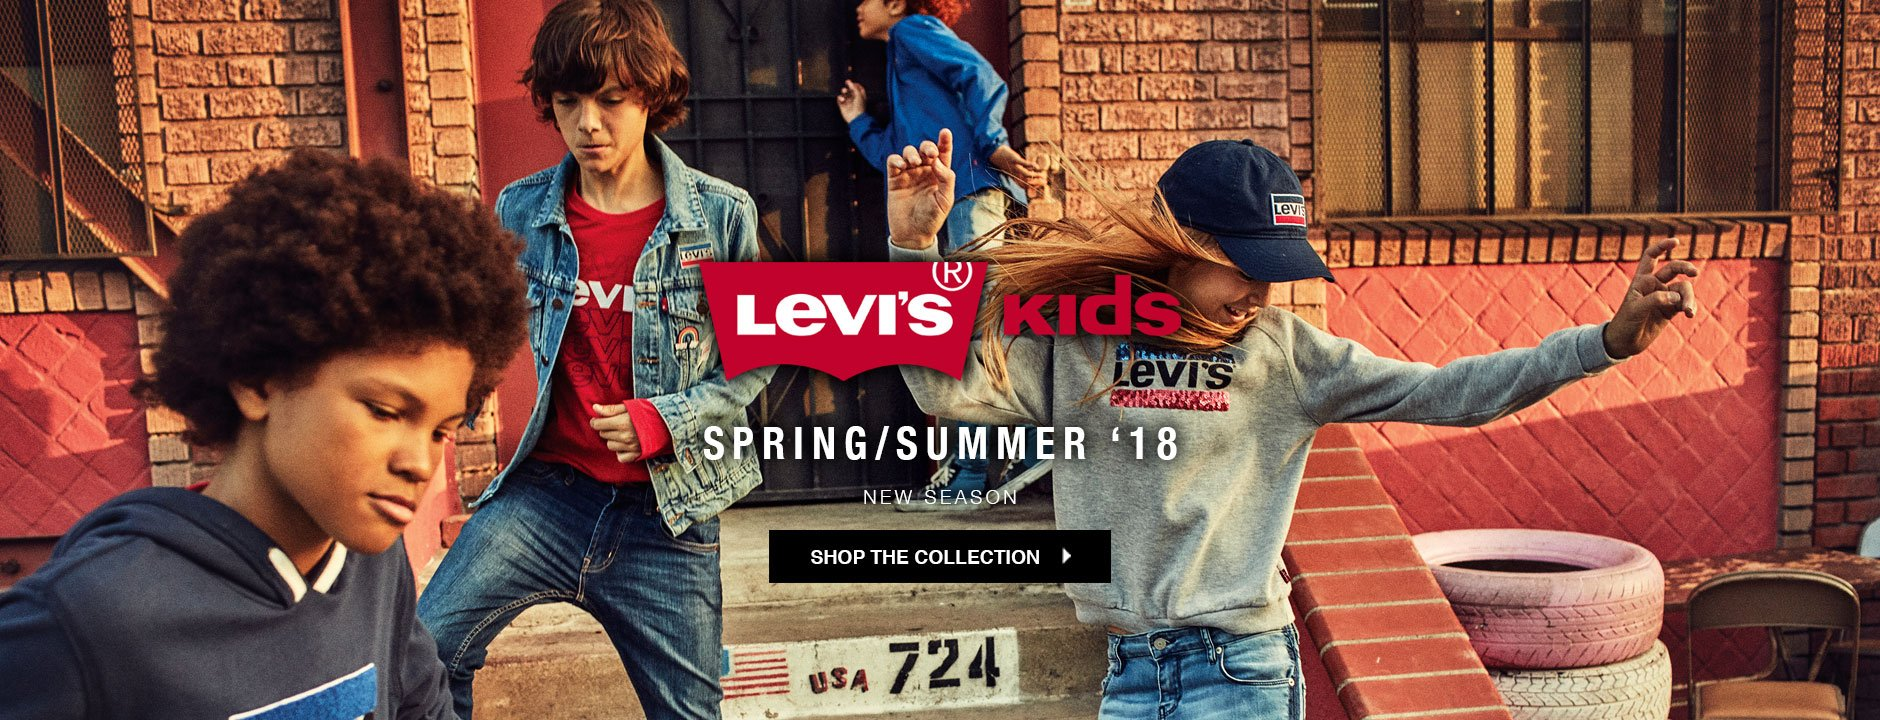 Levis kids Spring / Summer 2018 collection